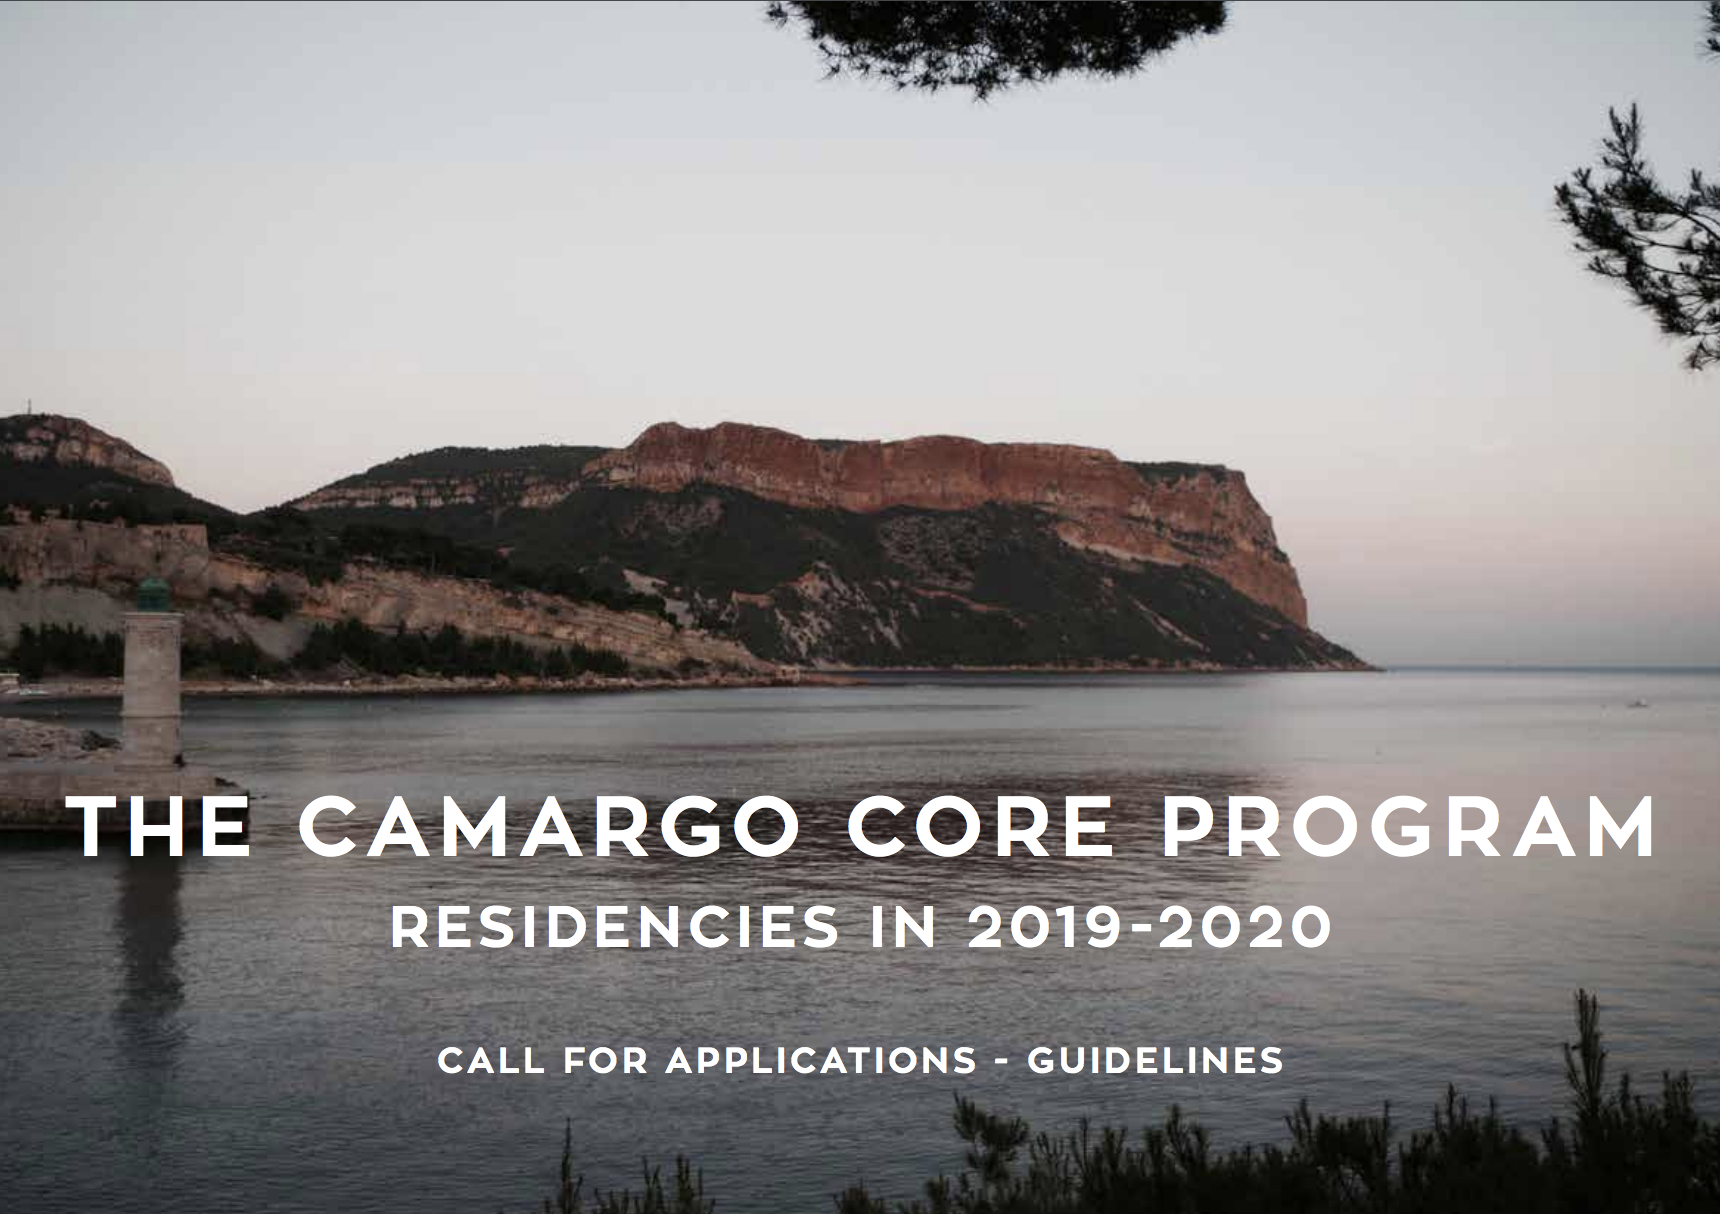 The Camargo Core Program, 2019 - 2020|Due 17th October